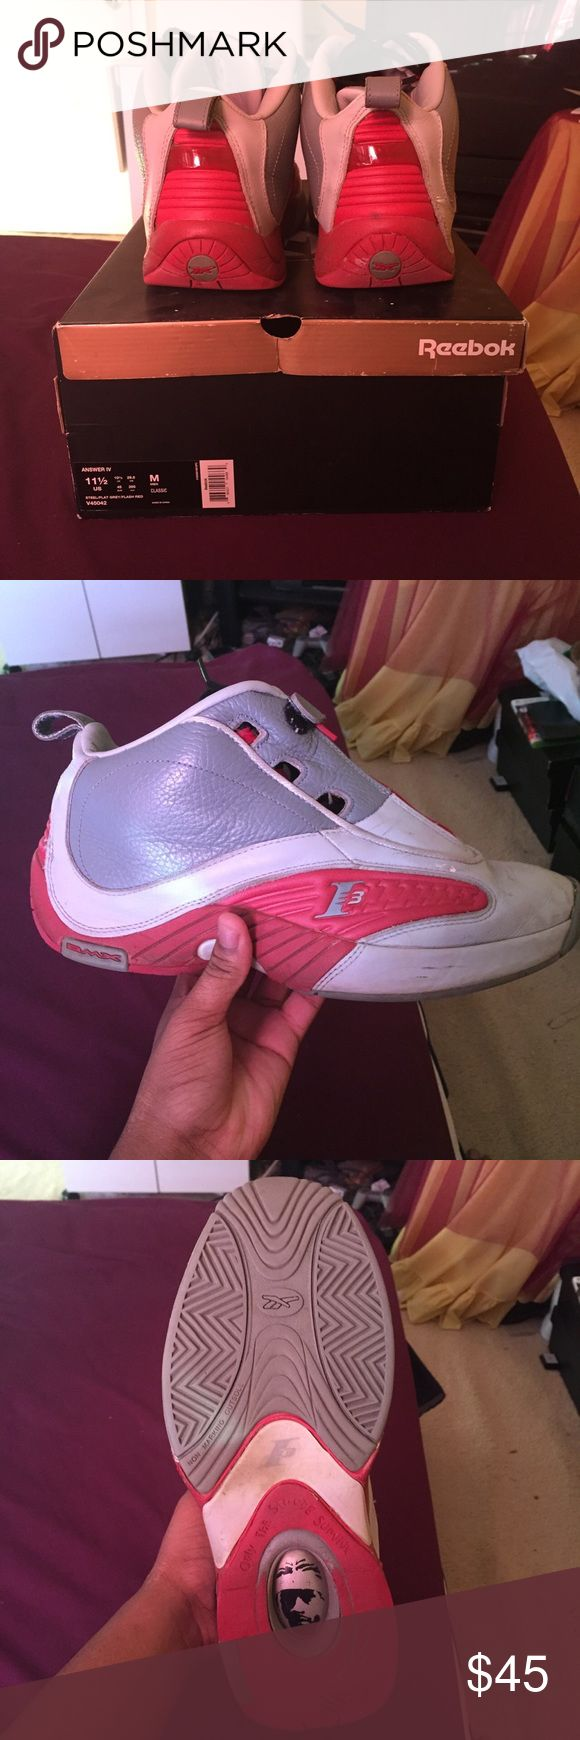 Allen iverson the Answer's still good condition Worn a decent amount great shoe to hoop in Reebok Shoes Sneakers